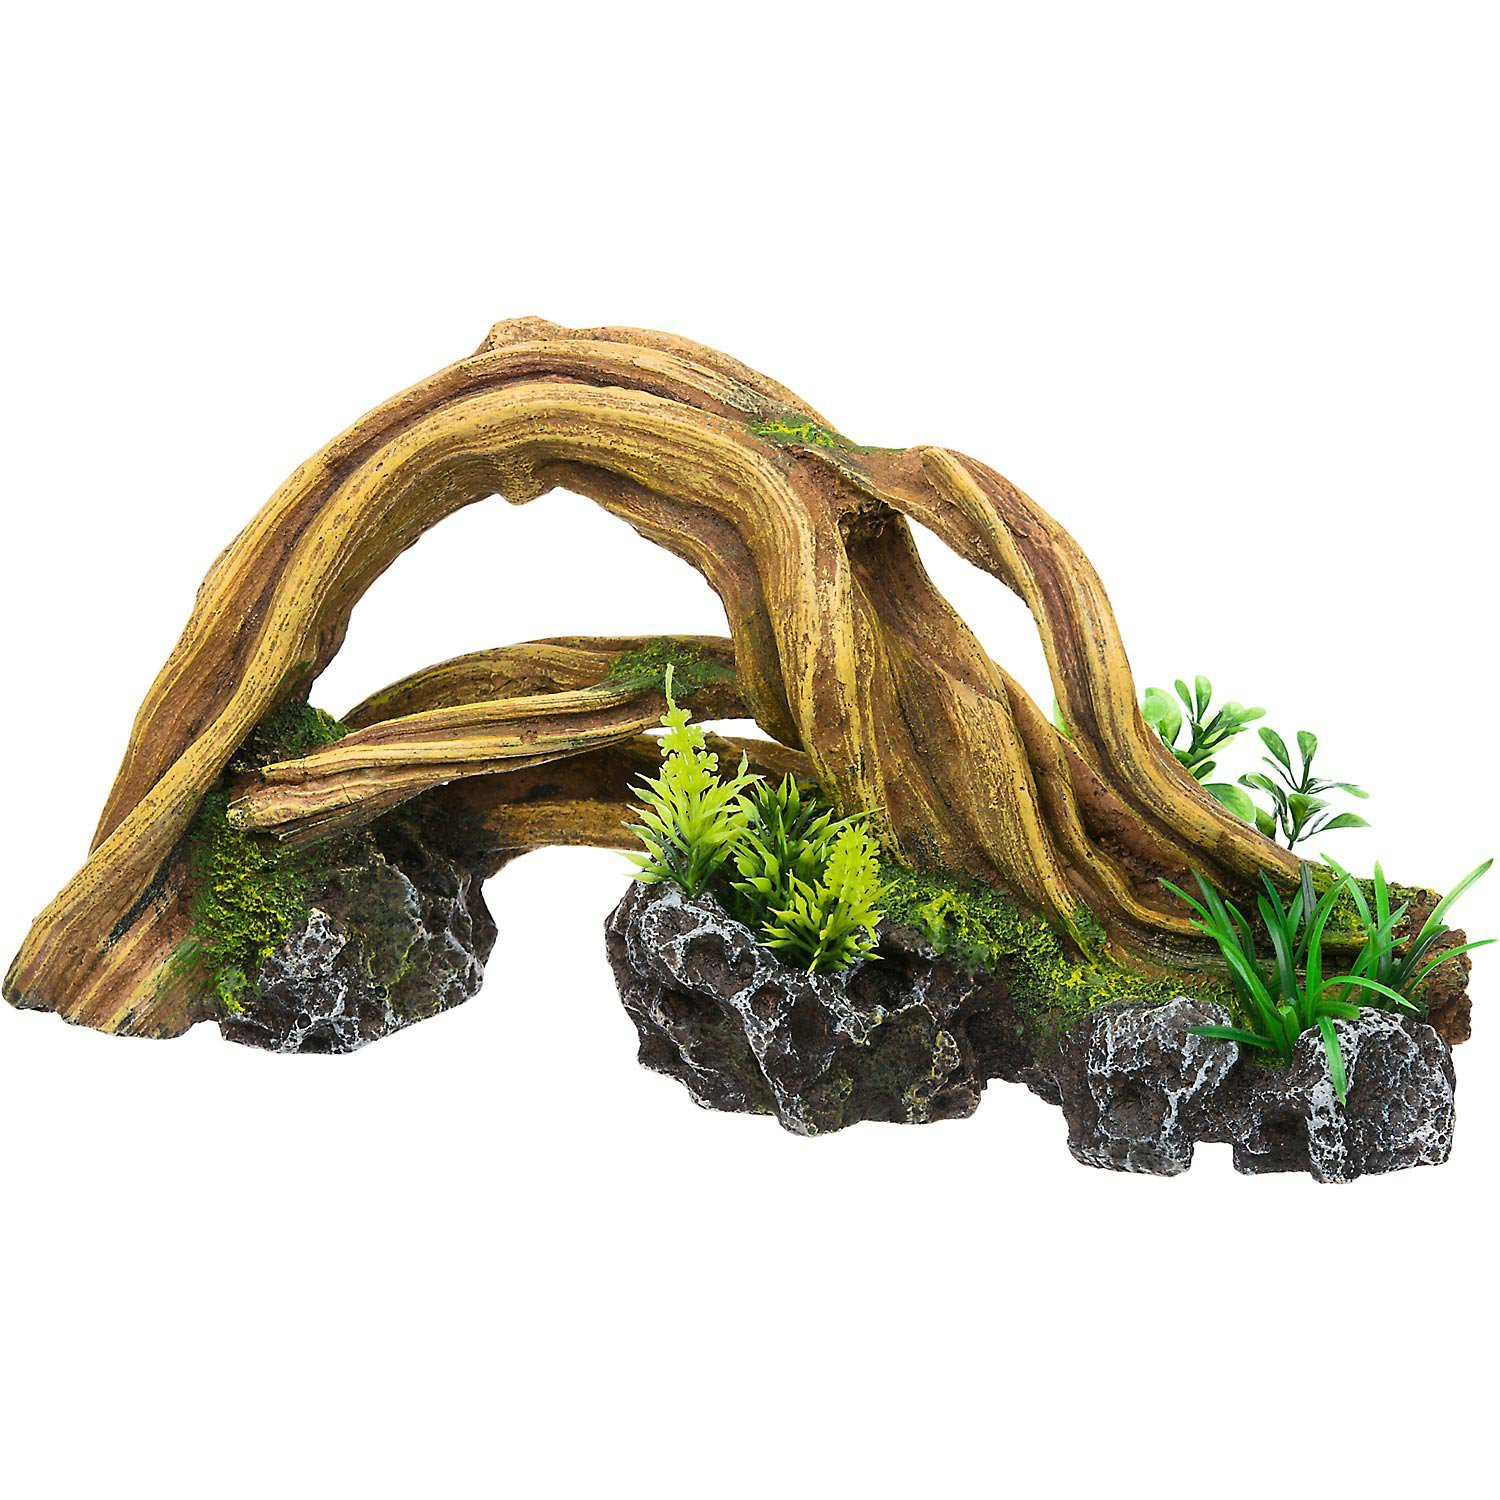 RockGarden Resin Wood Arch with Plants, Brown / Green by Rock Garden